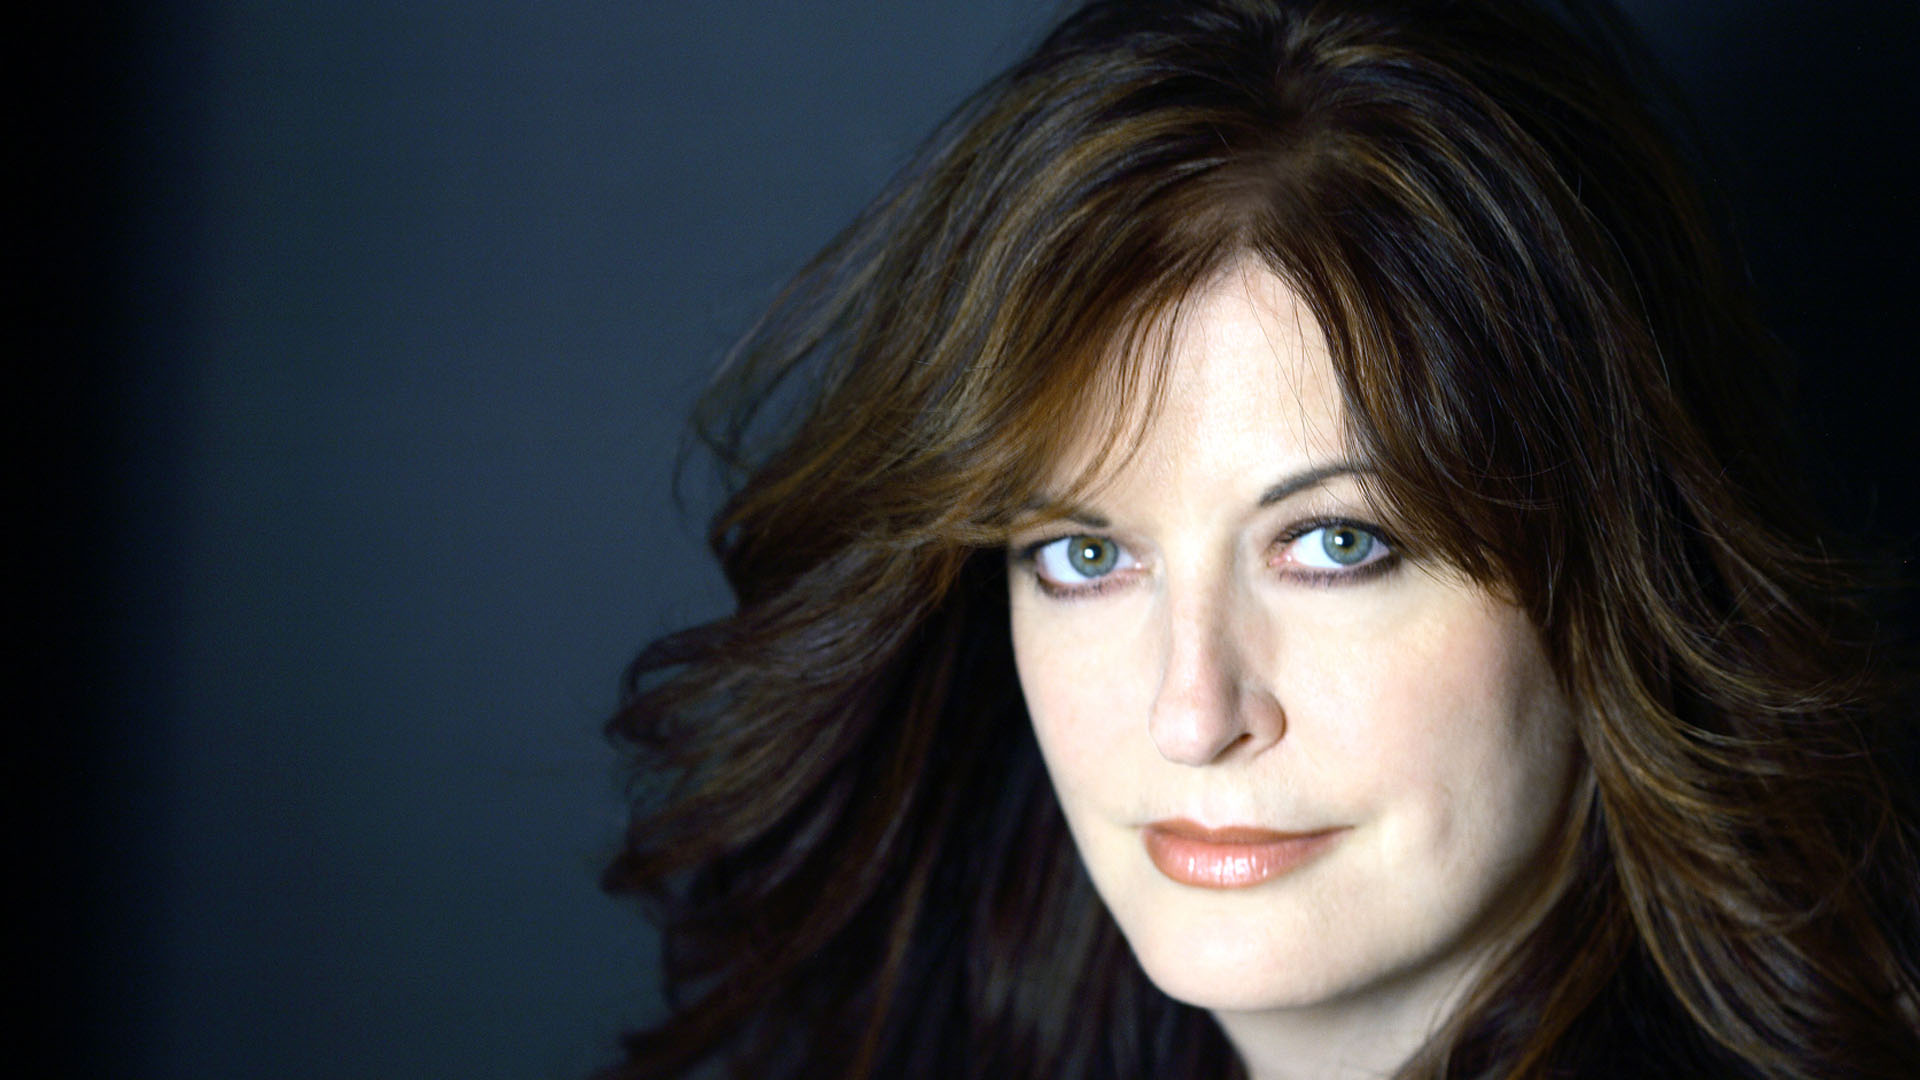 Jazz diva Ann Hampton Callaway says she fell in love with Tucson in 1991, and decided to make it her home in 2018.